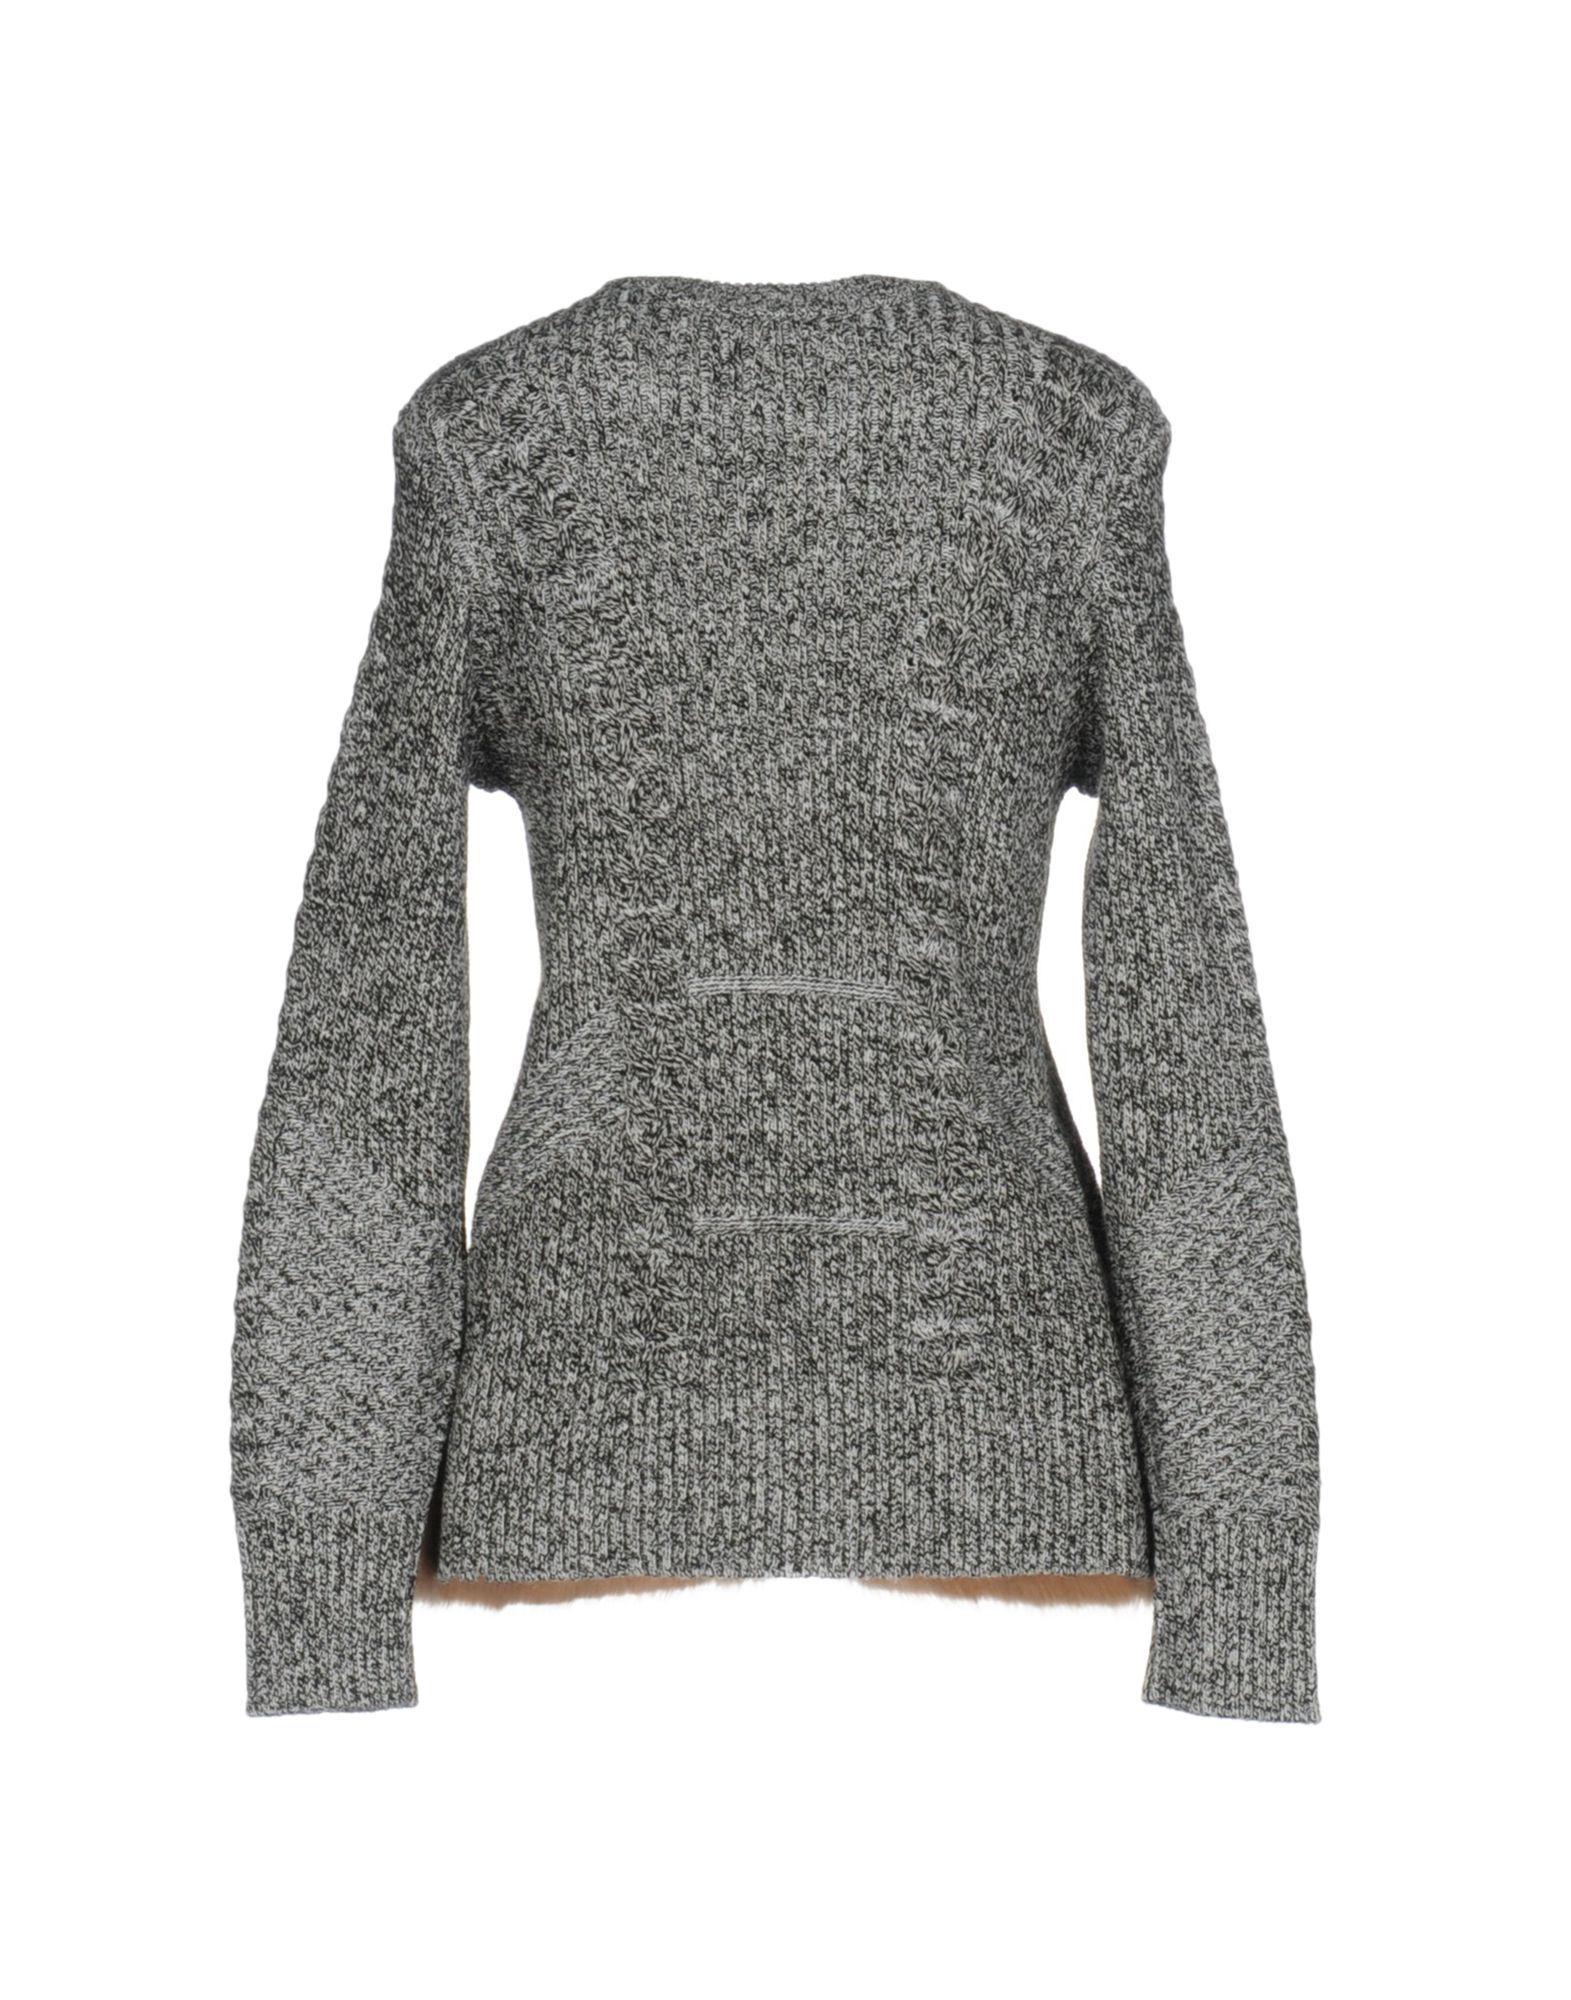 Opening Ceremony Black Knit Jumper With Faux Fur Hem